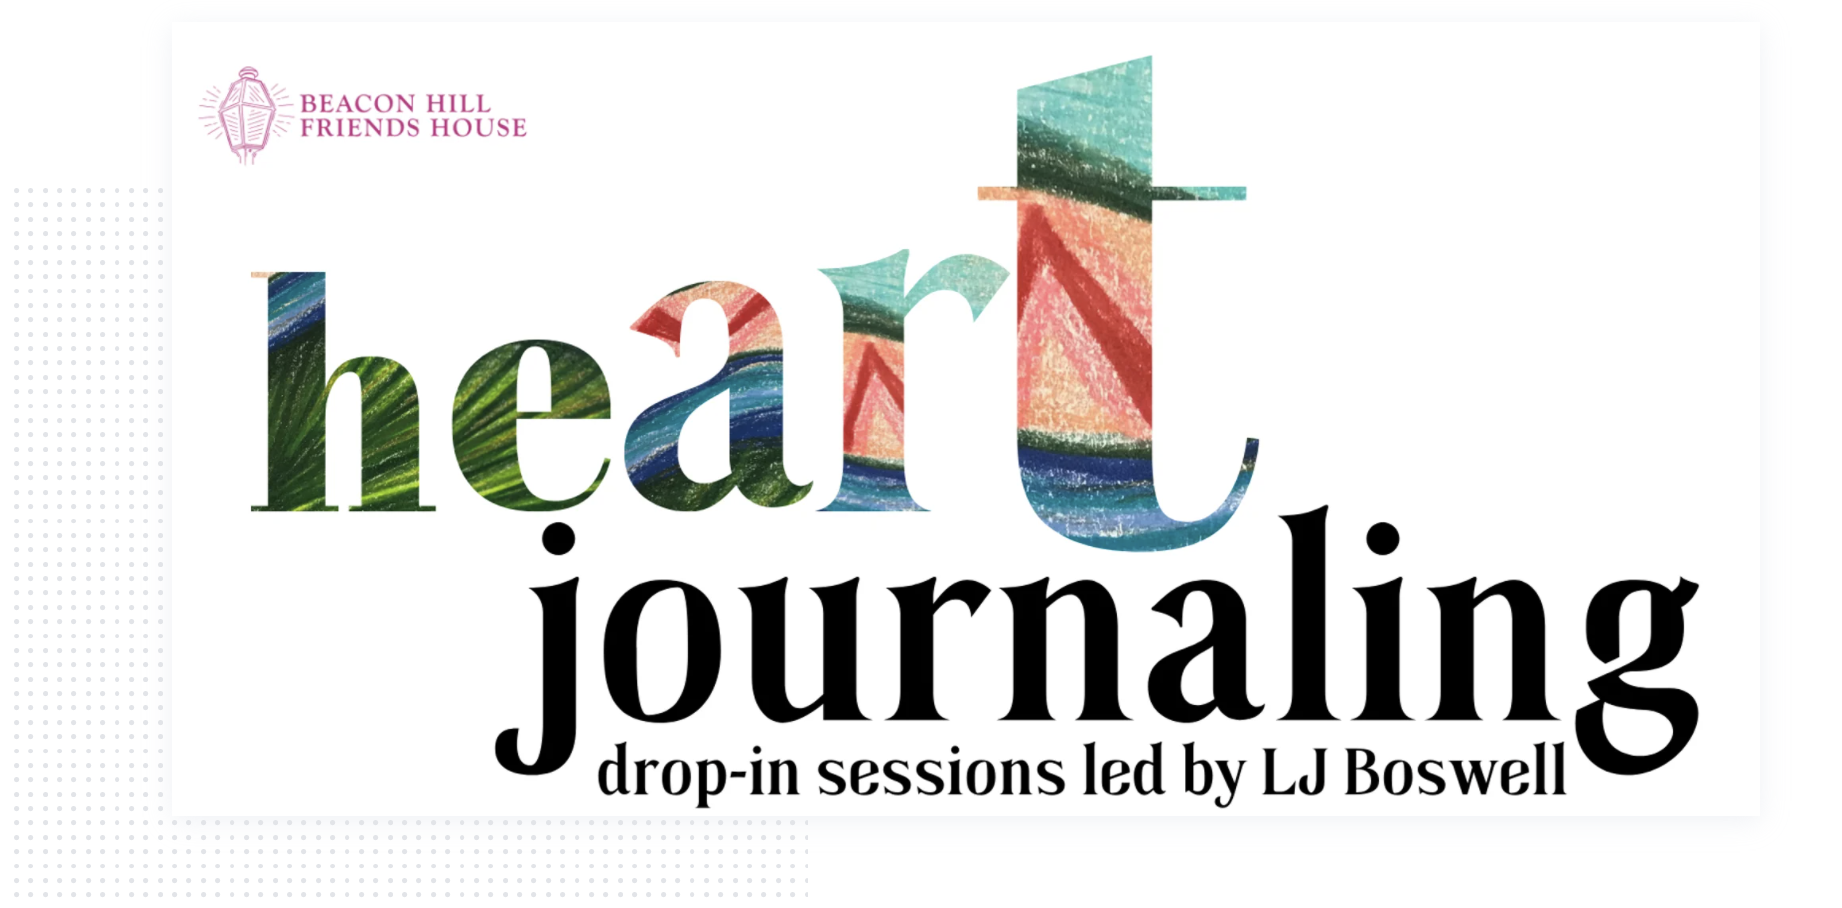 Heart Journaling drop-in sessions led by LJ Boswell